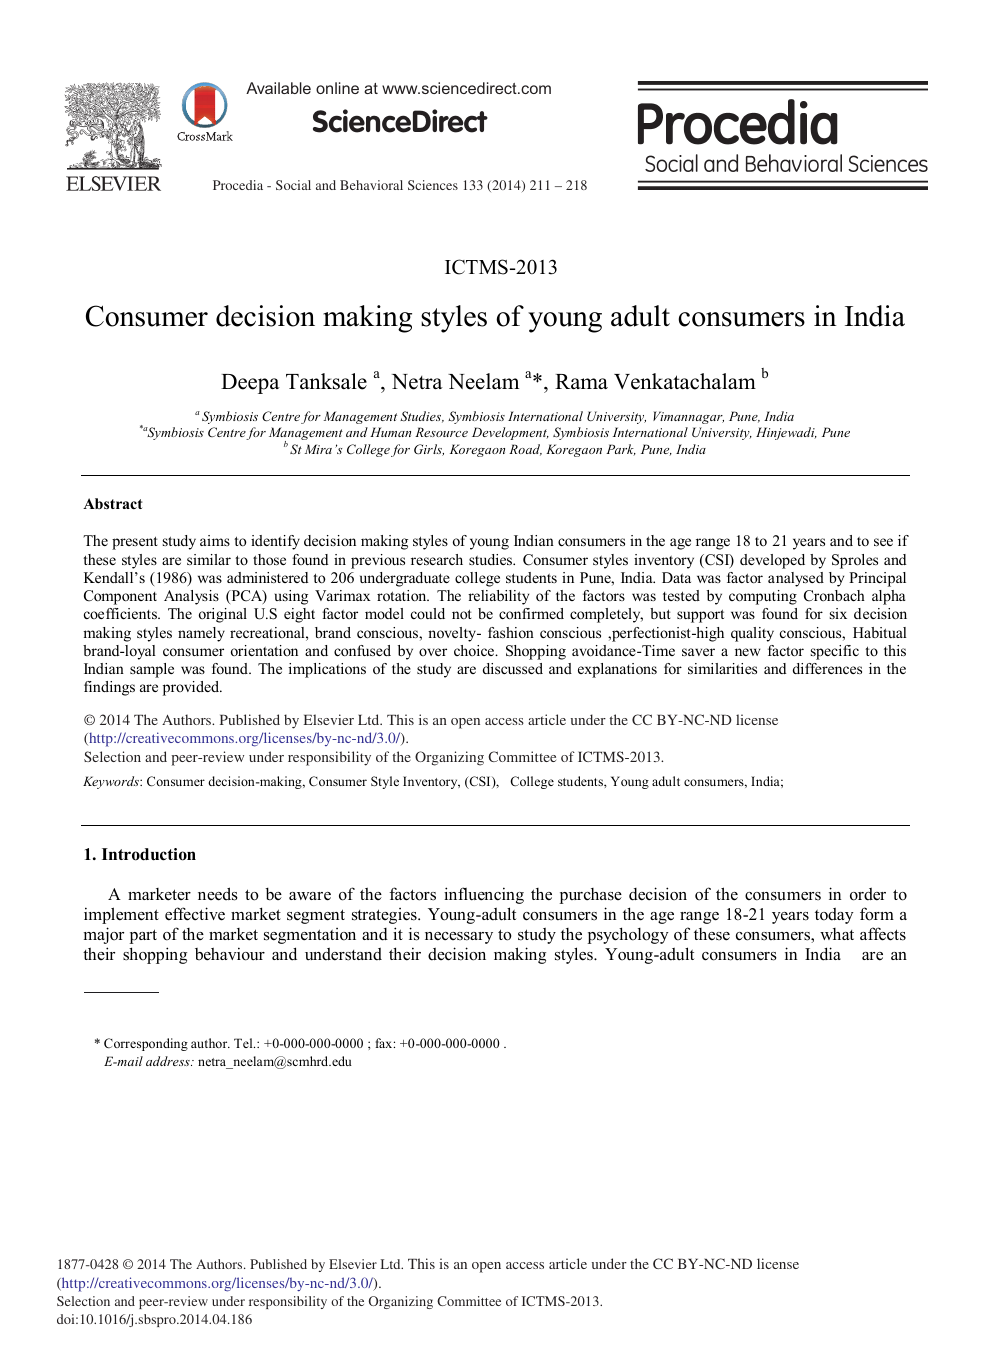 Consumer Decision Making Styles of Young Adult Consumers in